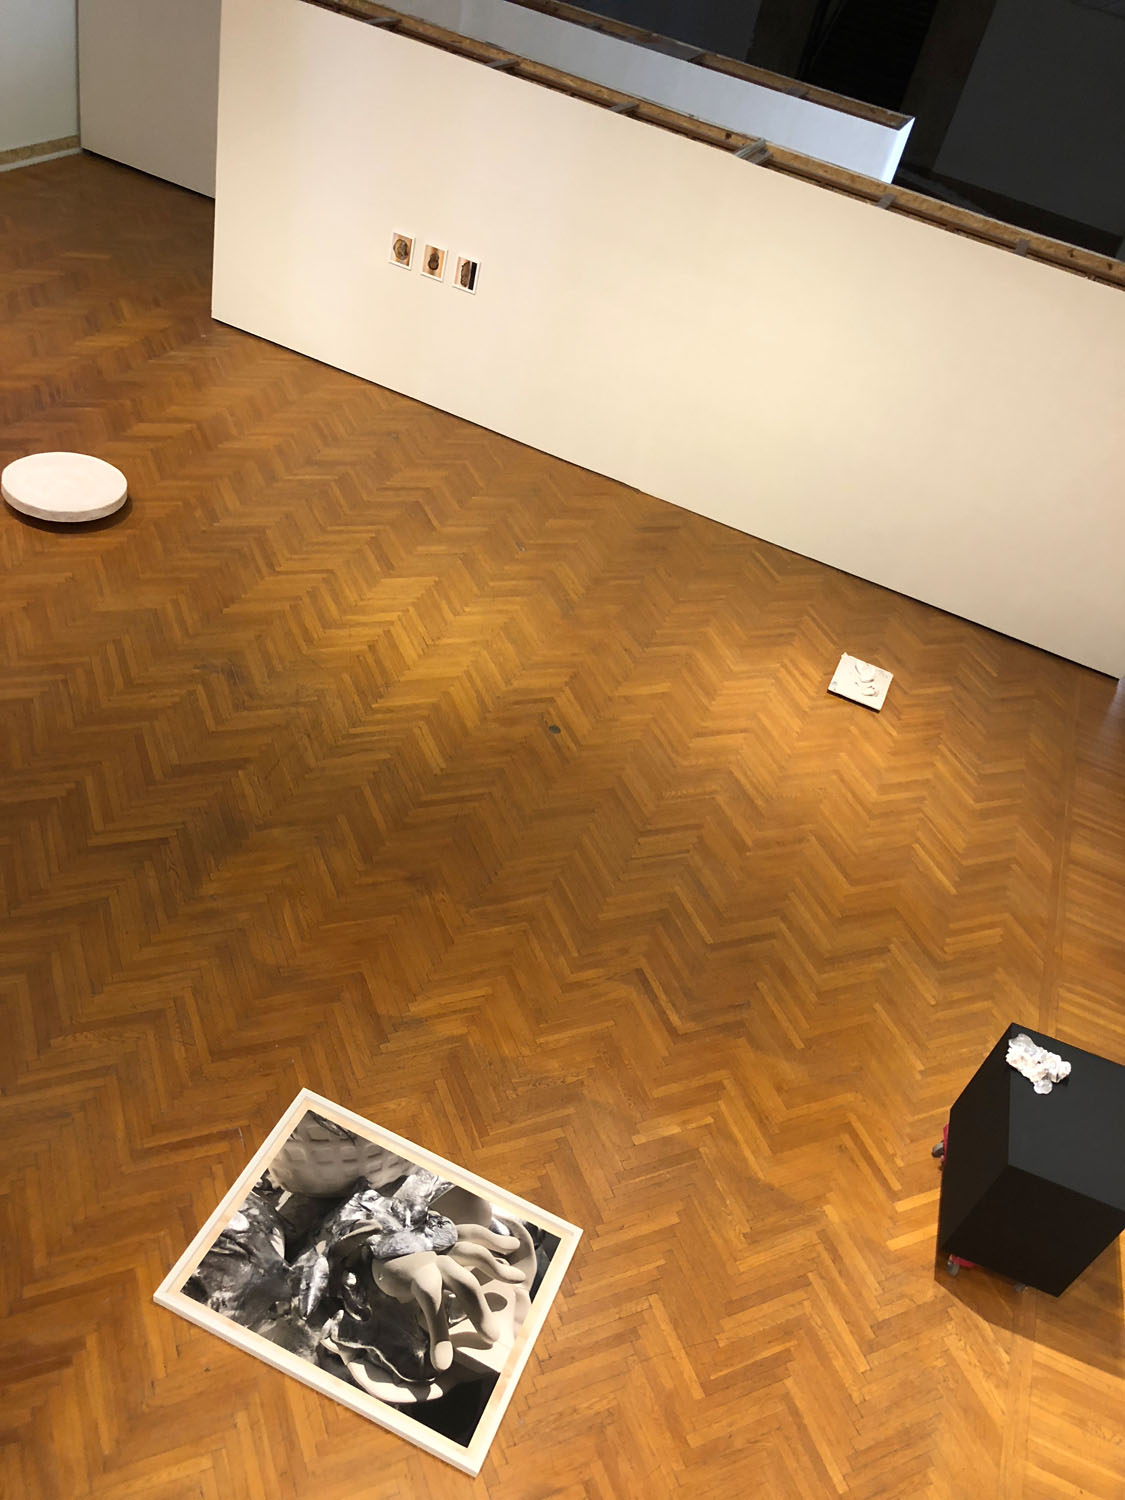 Into The Matter , exhibition view from lift, 2018, Mills College Art Museum